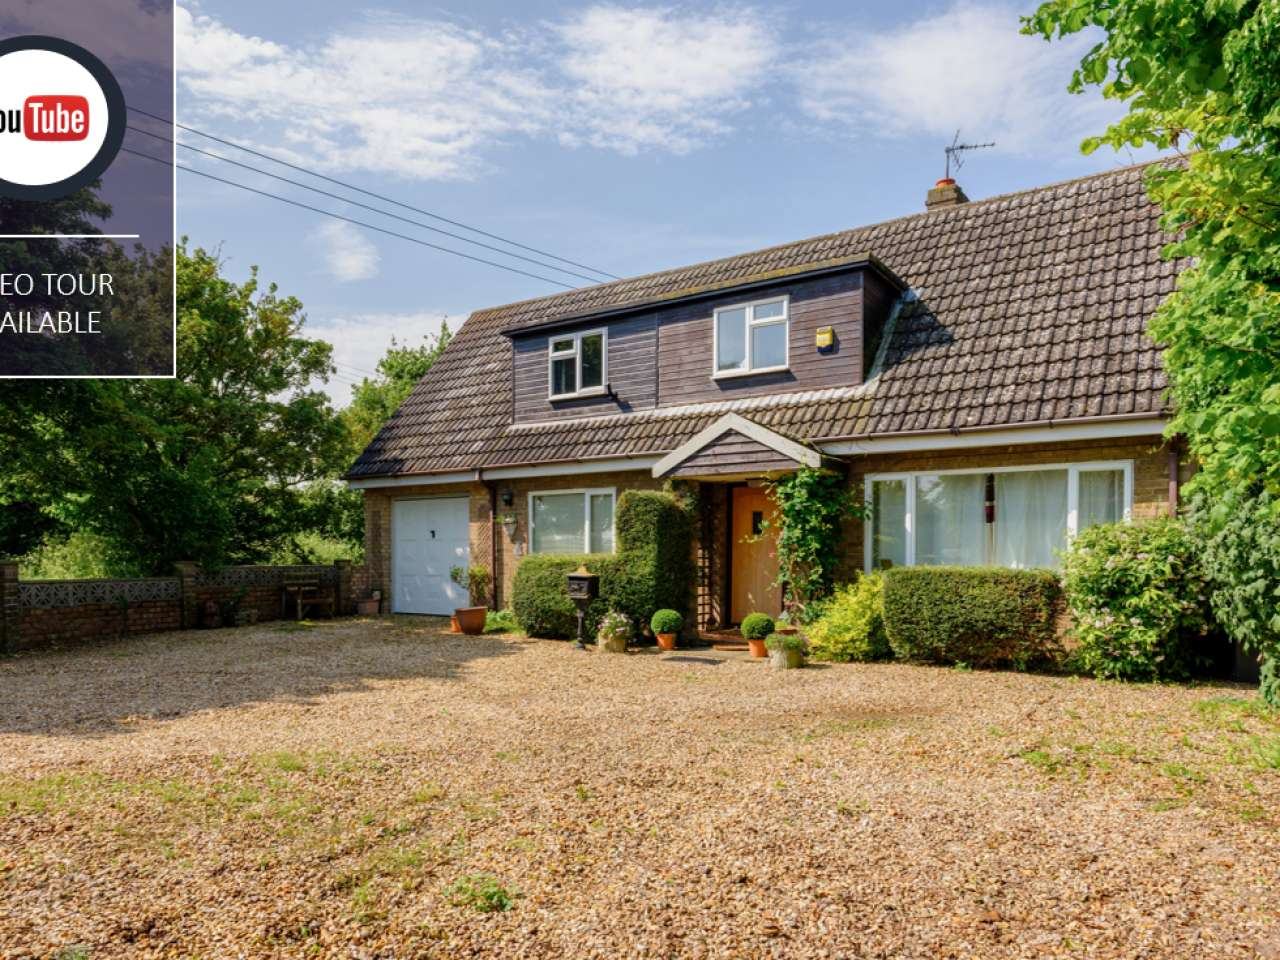 Terrill  Royston Road, Litlington, SG8 0RJ